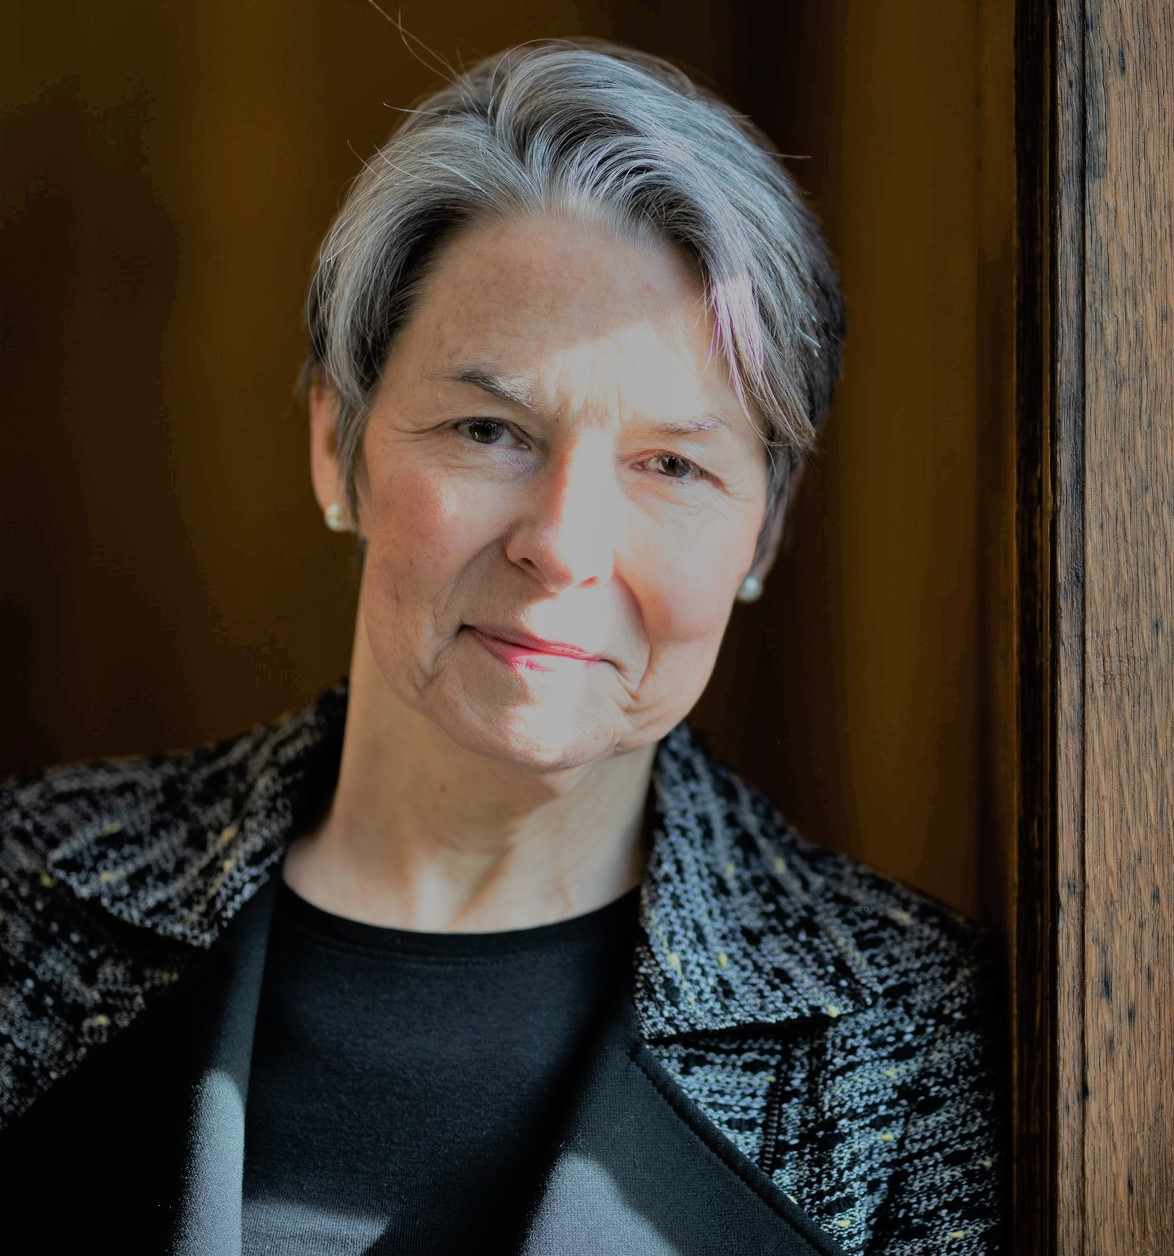 Dame Sarah Worthington in discussion with Trinity in Japan on Friday 26 February 2021 at 6pm